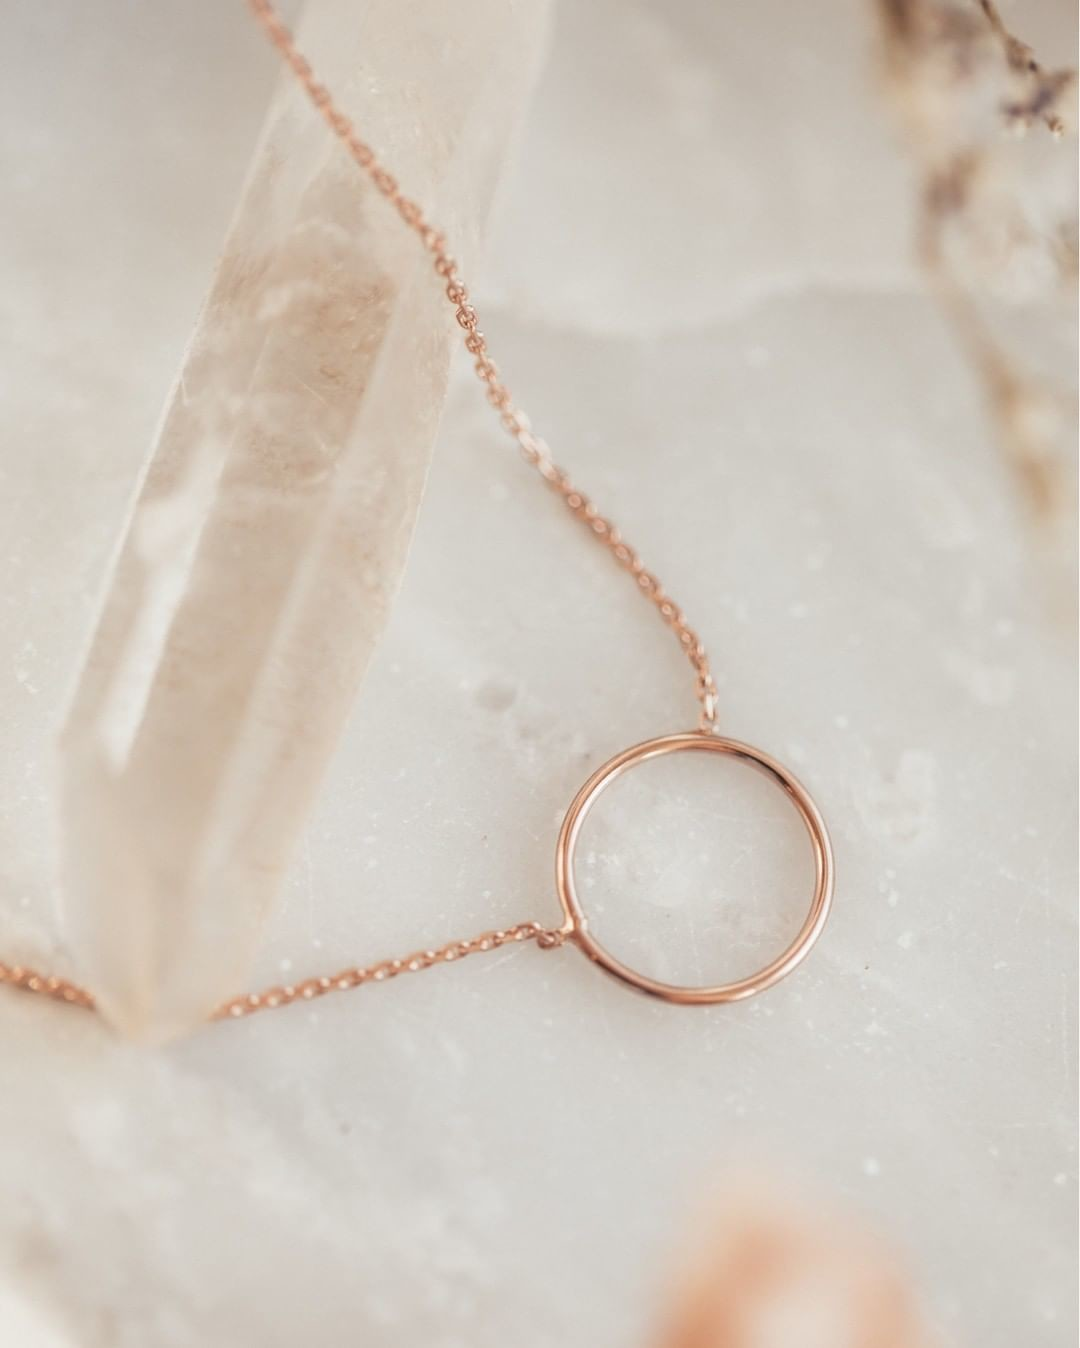 Dainty & darling, this 14k rose gold open circle necklace is the perfect addition to any outfit.